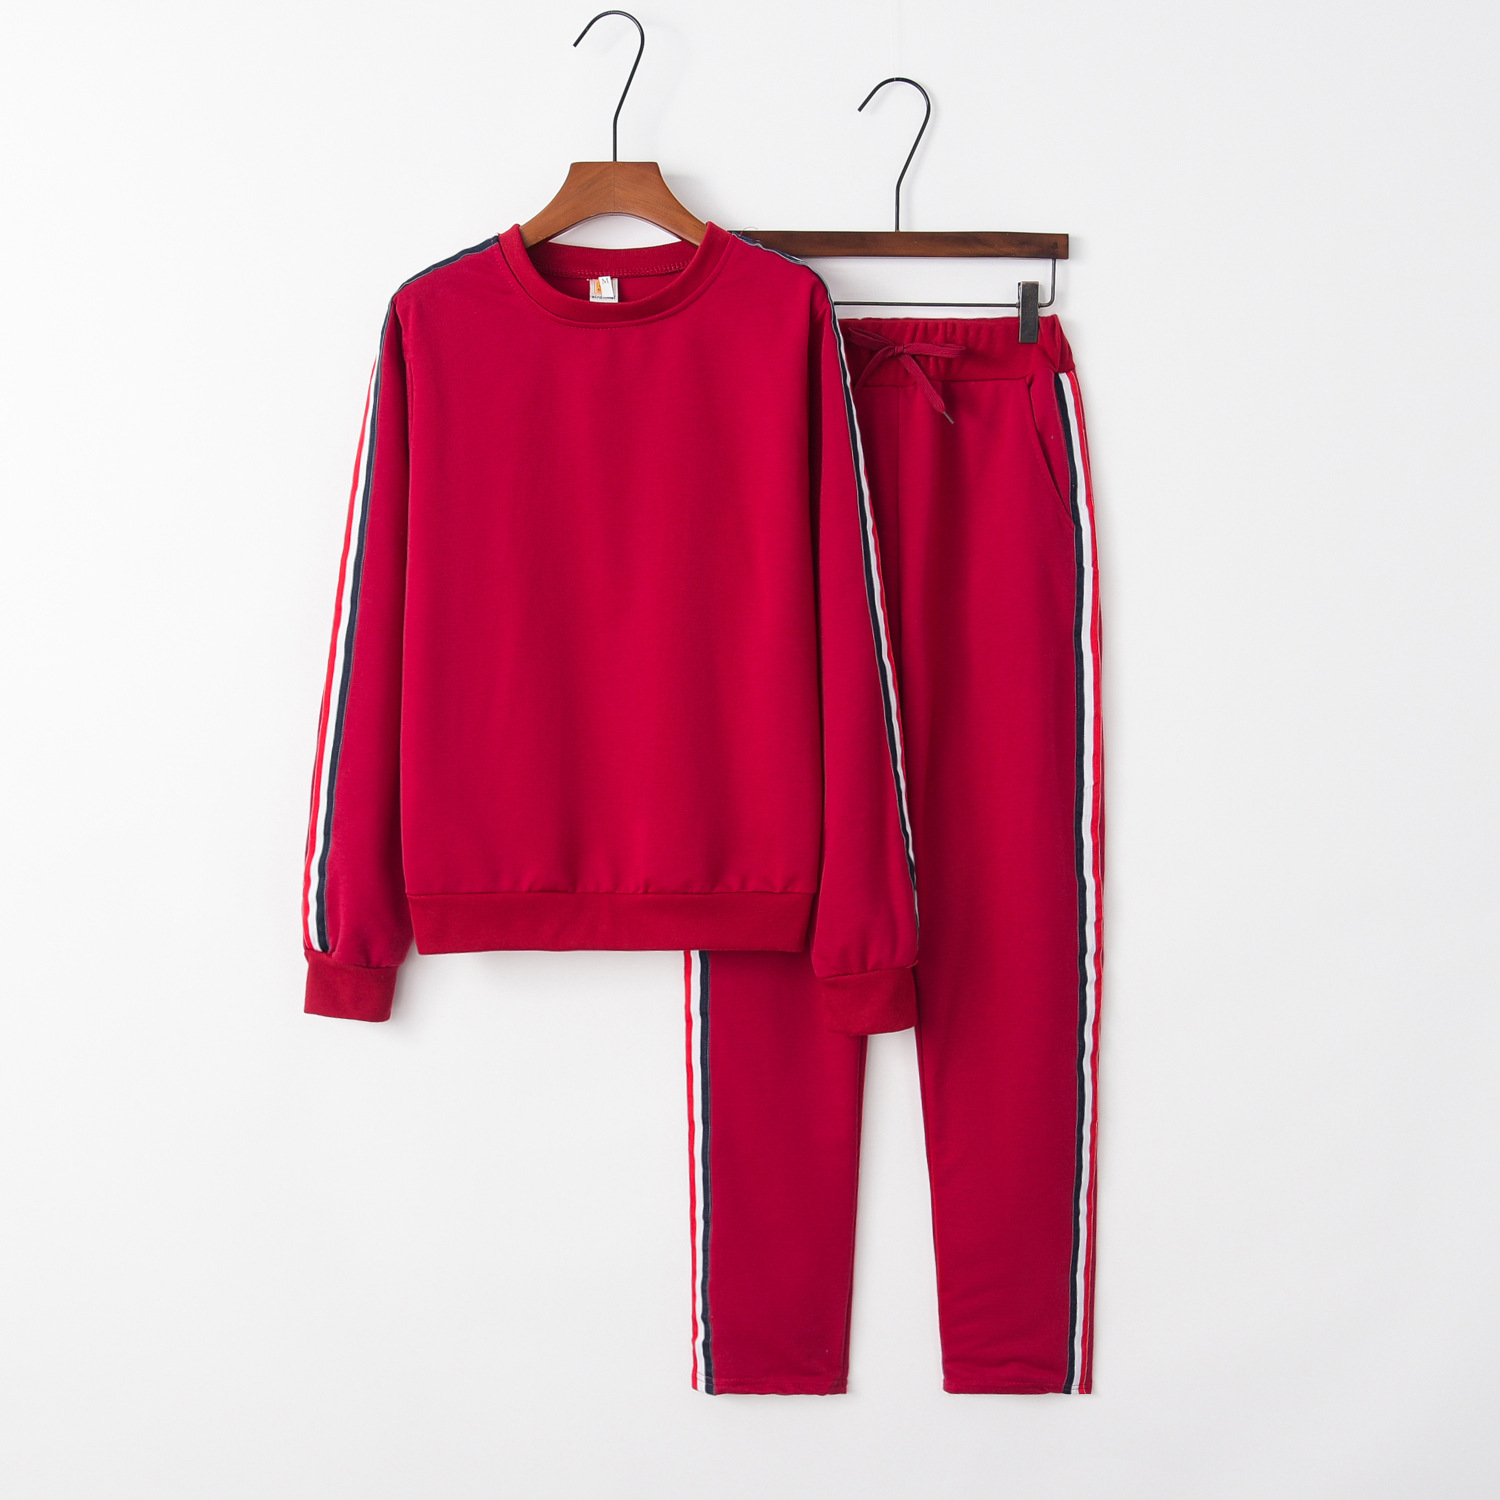 Red Warm 2020 New Design Fashion Hot Sale Suit Set Women Tracksuit Two-piece Style Outfit Sweatshirt Sport Wear